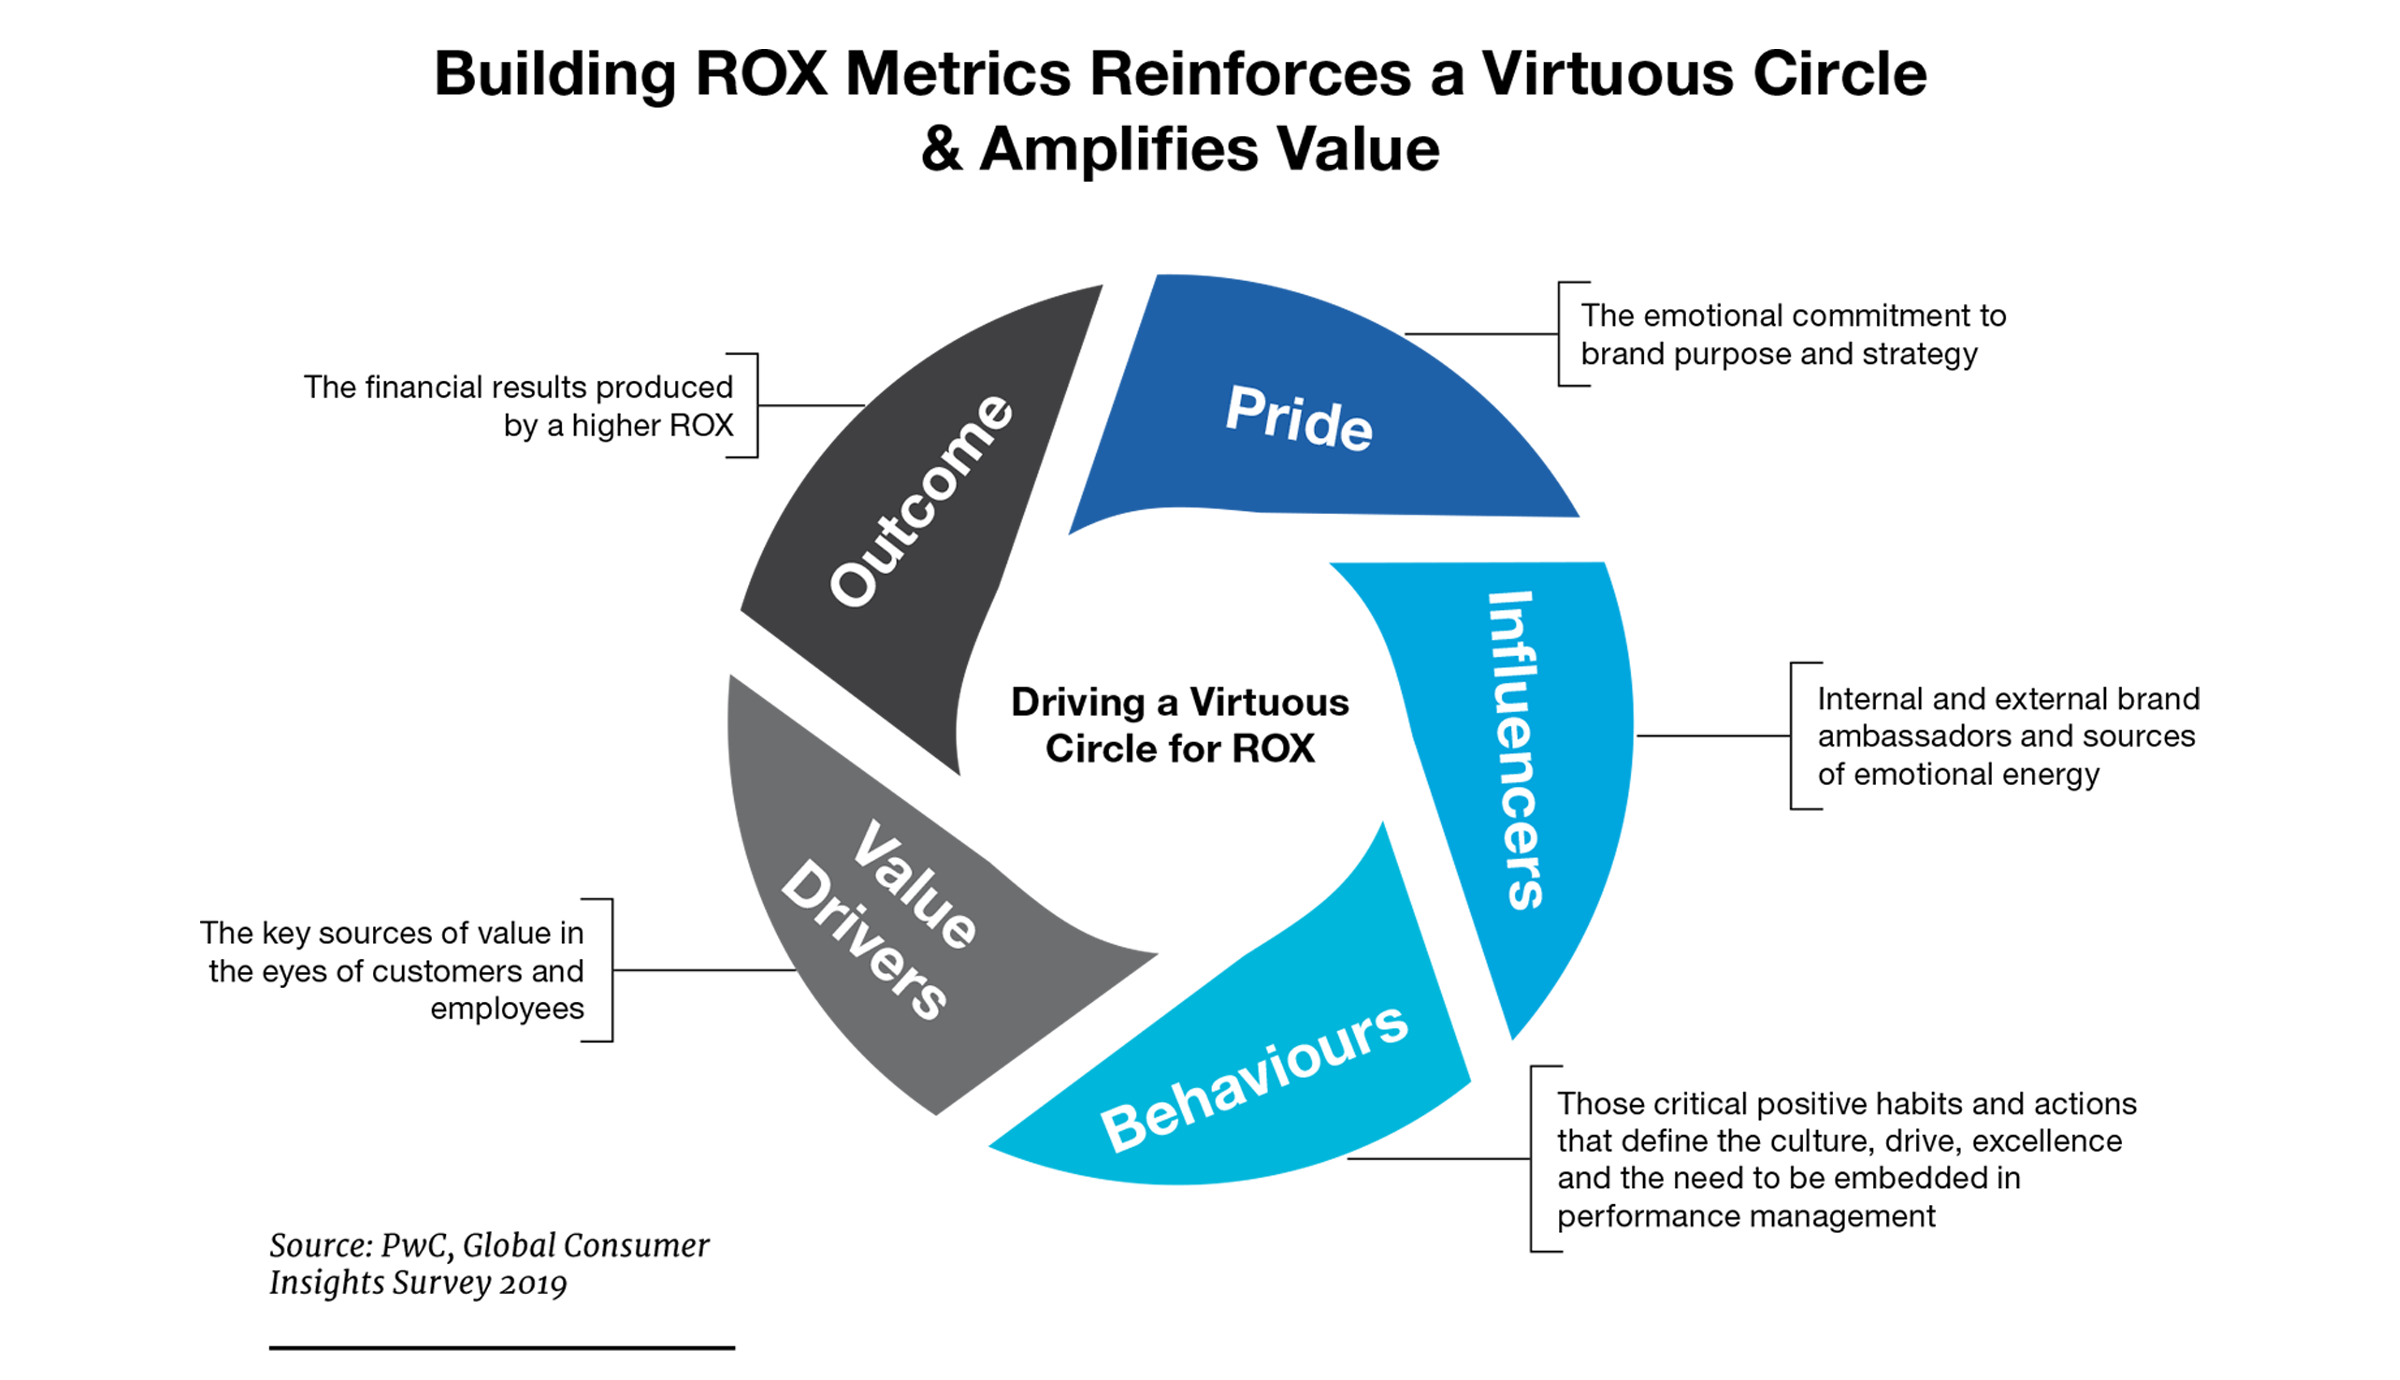 customer-experience-roi-blog-image-1-2400x1380.png